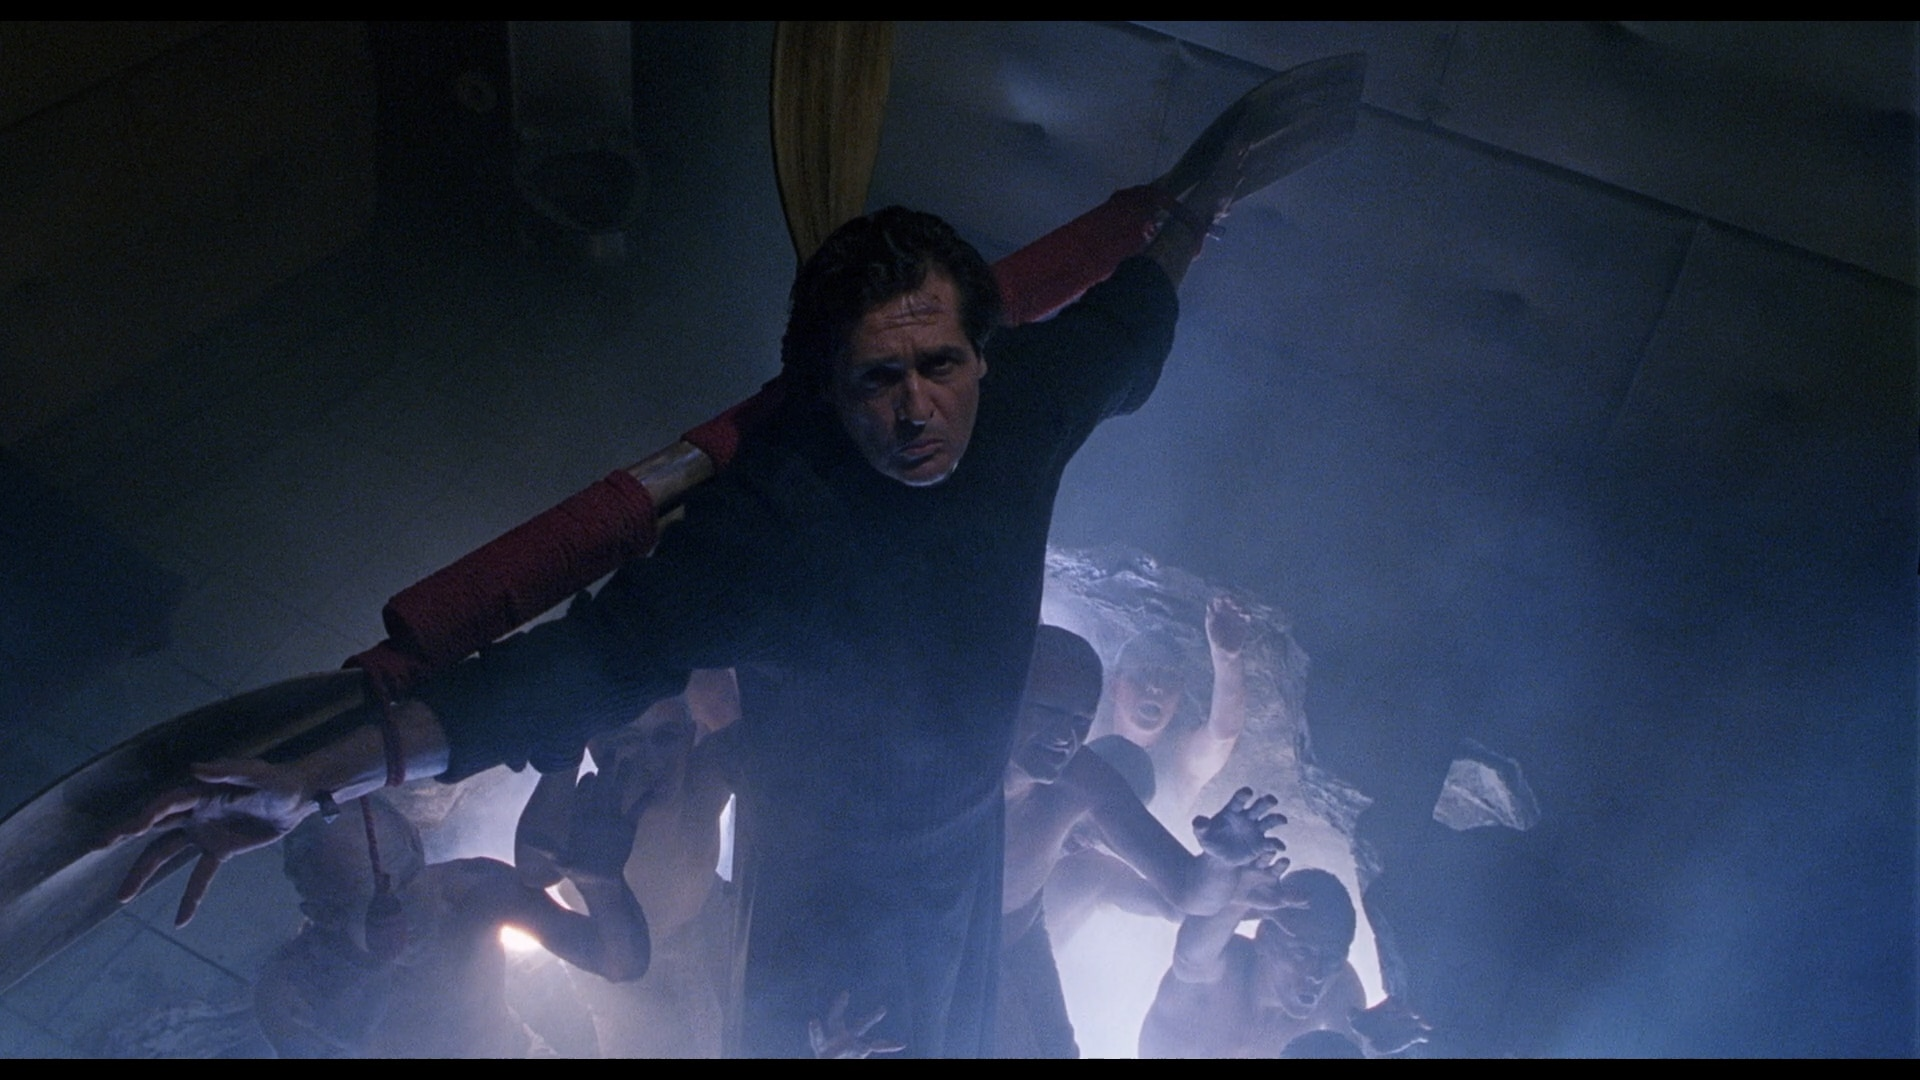 exorcist 3 - DC's Shudder Pick of the Weekend - The Exorcist III